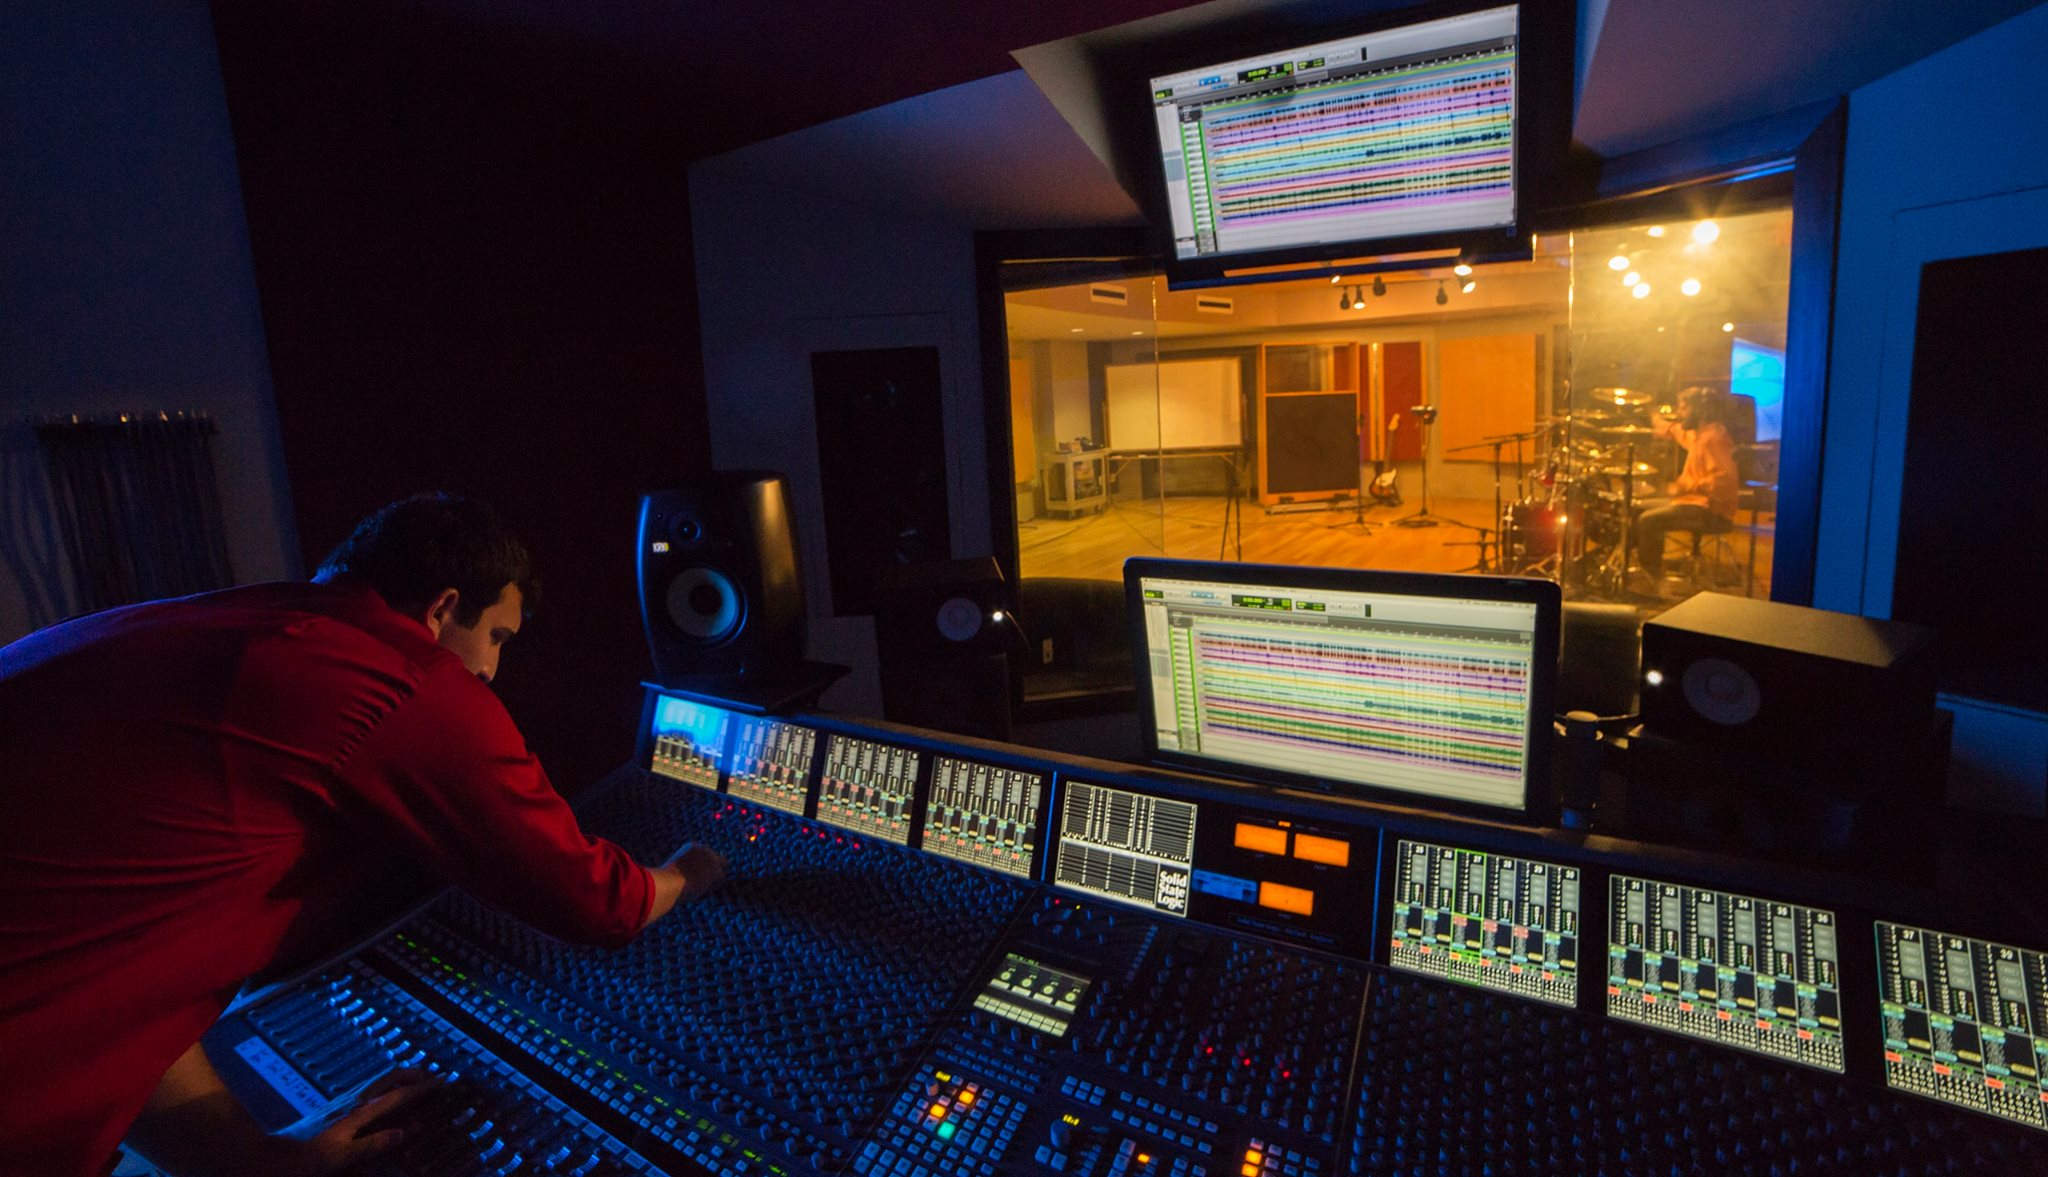 audio-mixing-board.jpg